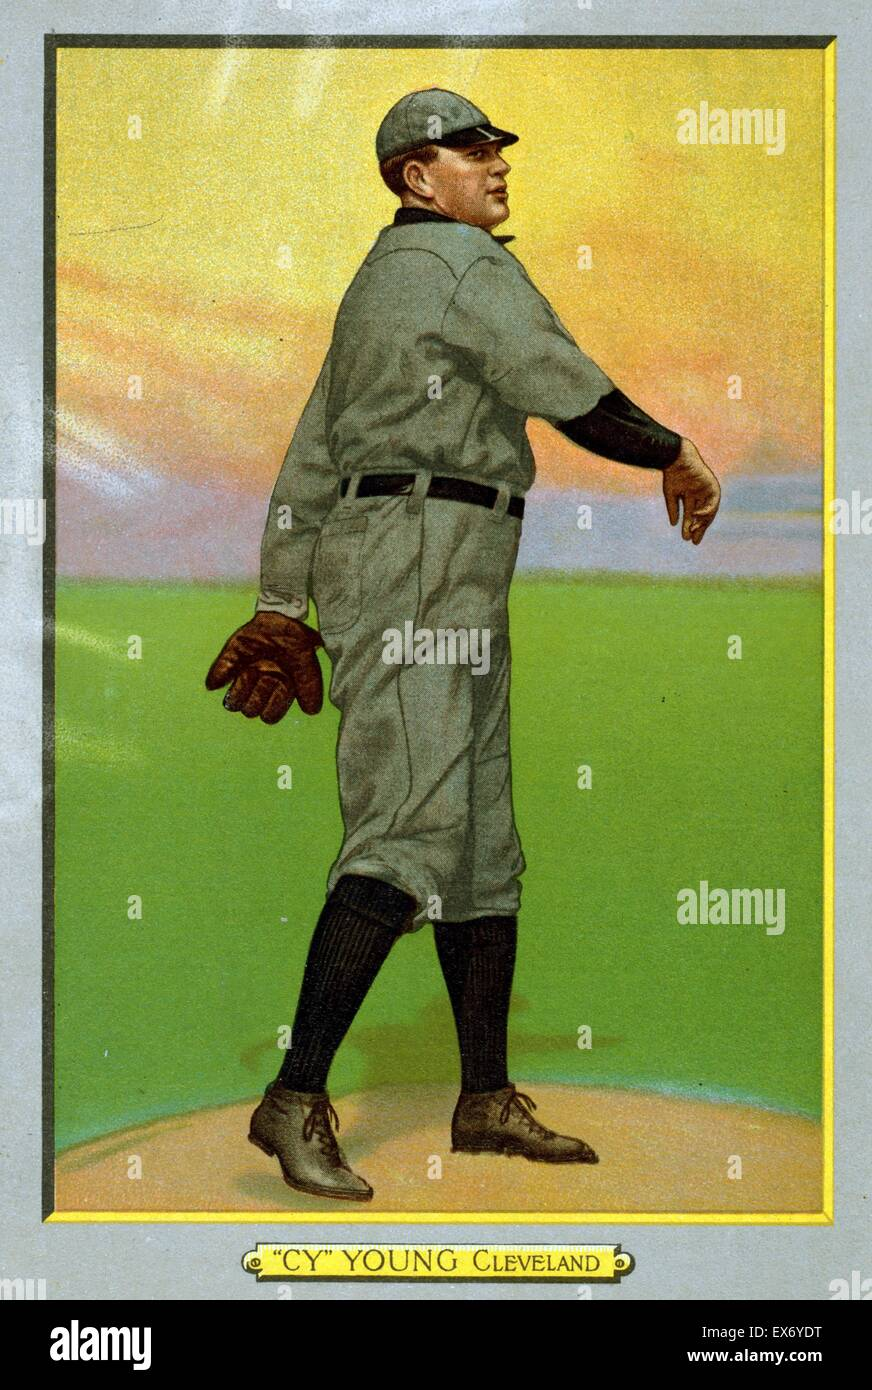 Cy Young, Cleveland Naps, baseball card portrait - Stock Image